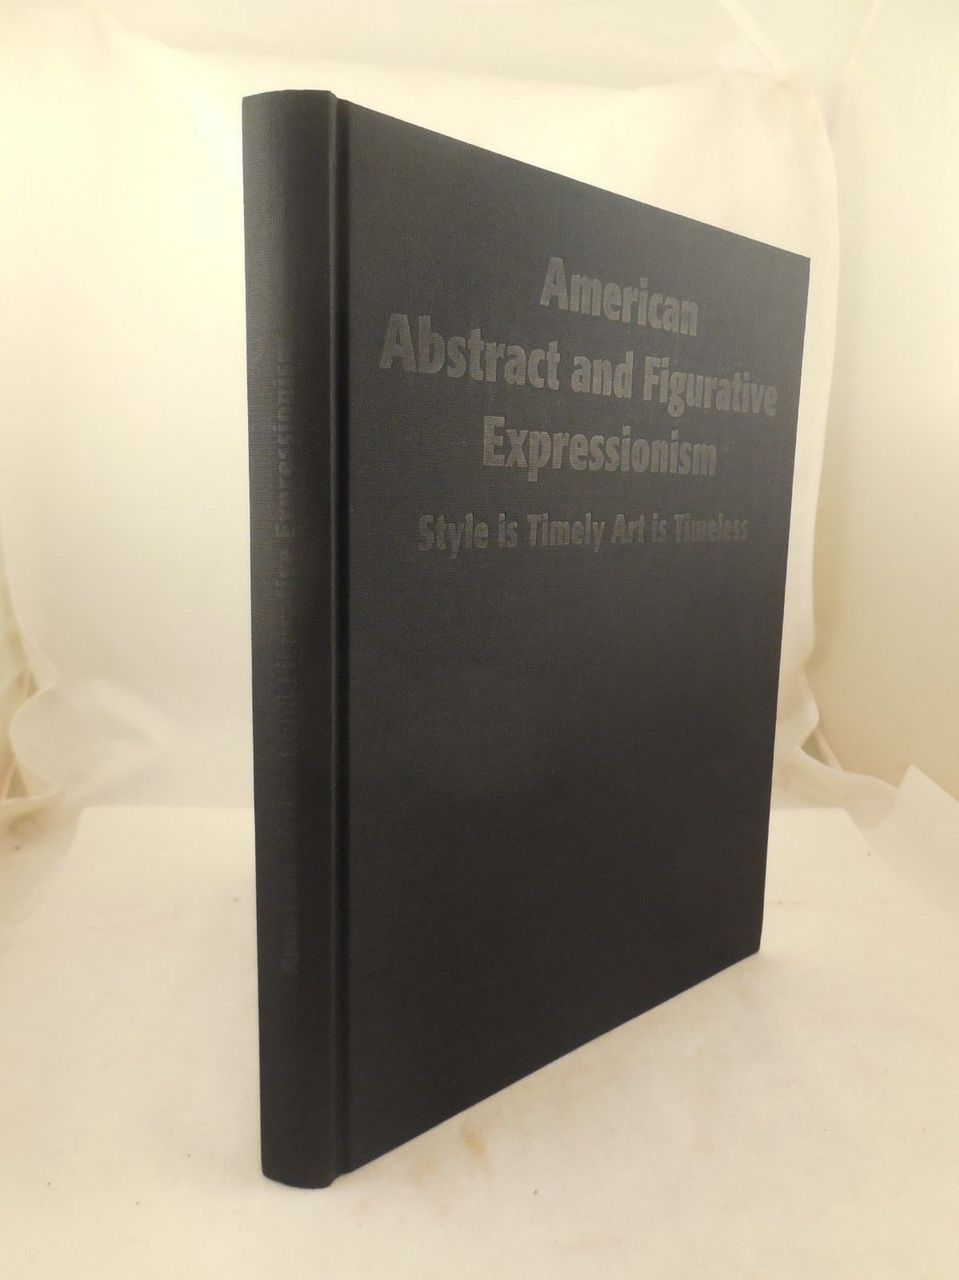 AMERICAN ABSTRACT AND FIGURATIVE EXPRESSIONISM, by Marika Herskovic - 2009 [1st Ed]